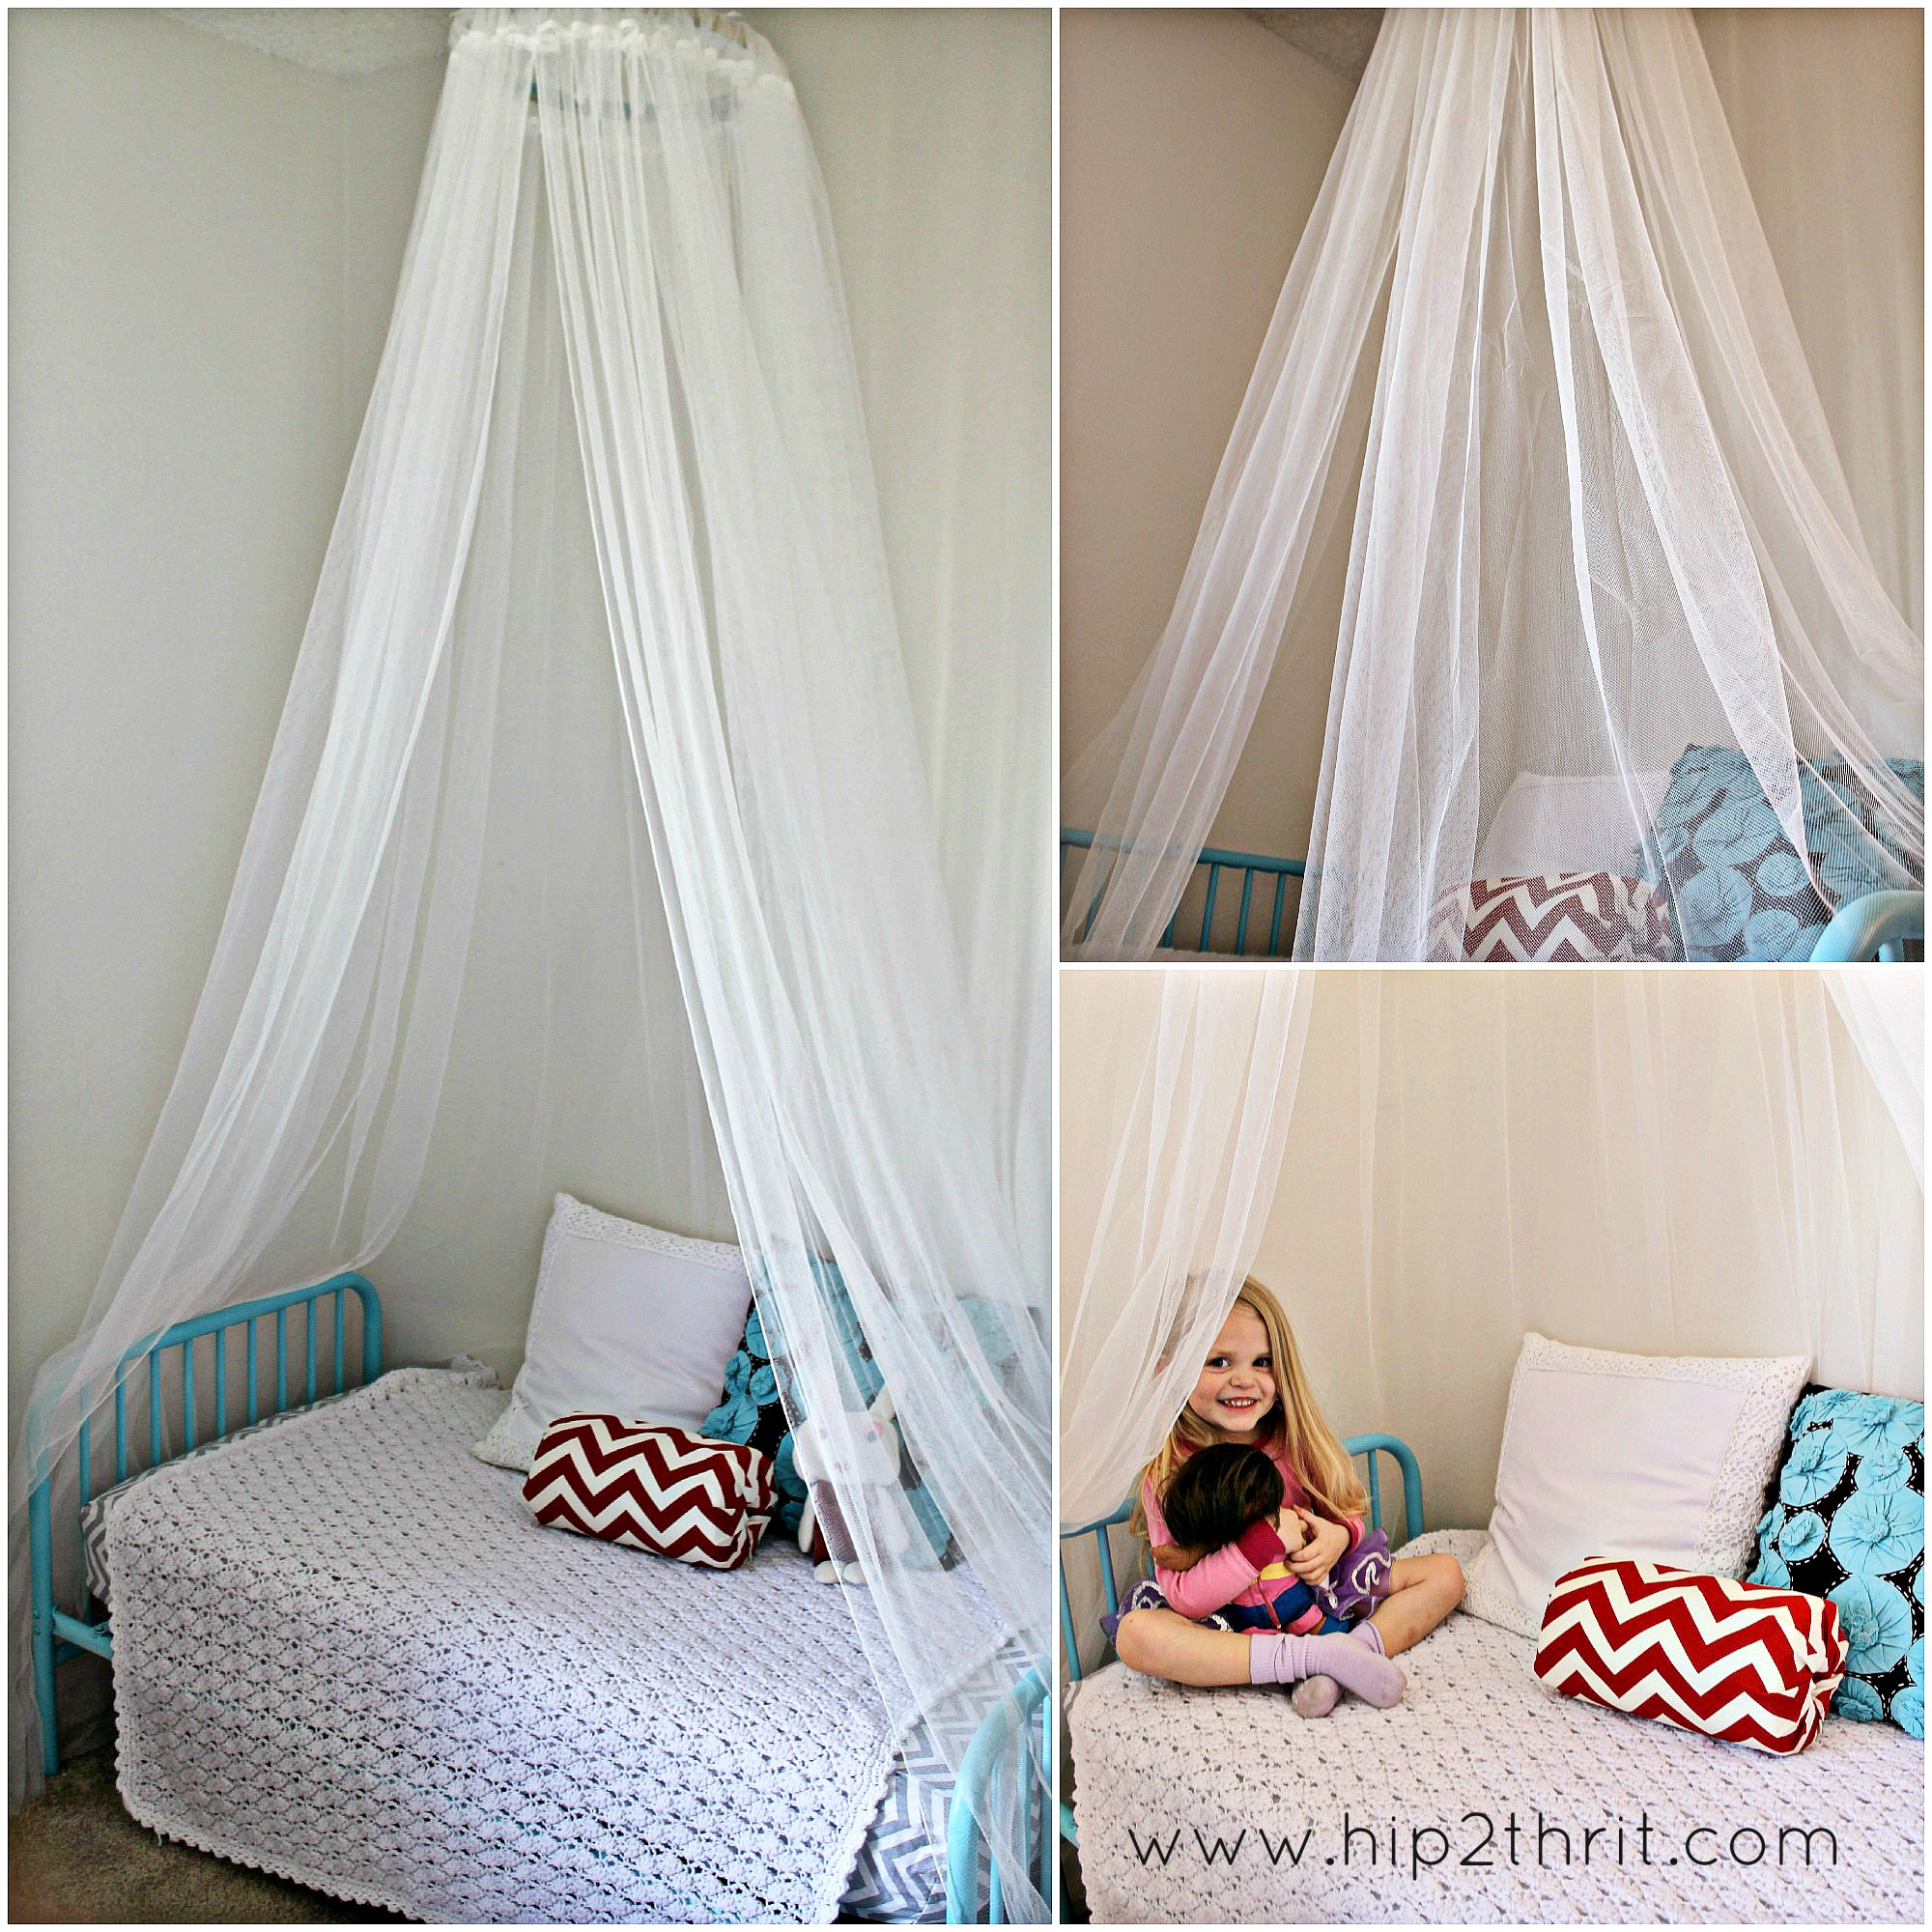 Best ideas about Bed Canopy DIY . Save or Pin Craftaholics Anonymous Now.